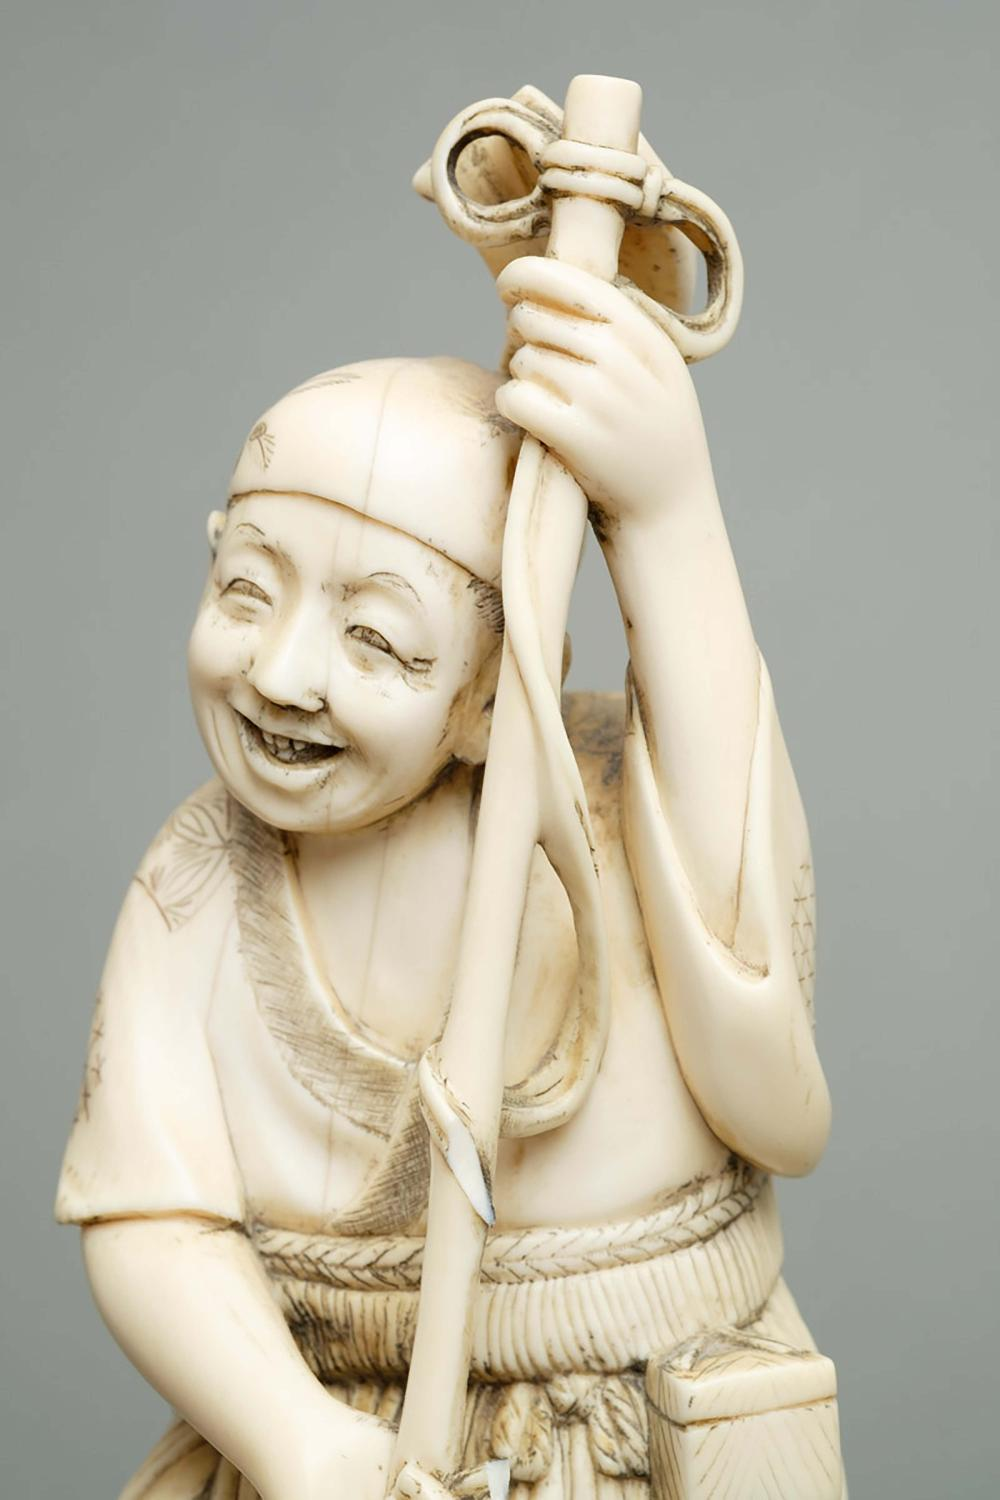 Ivory okimono of a fisherman spearing fish with a trident on a wooden stand